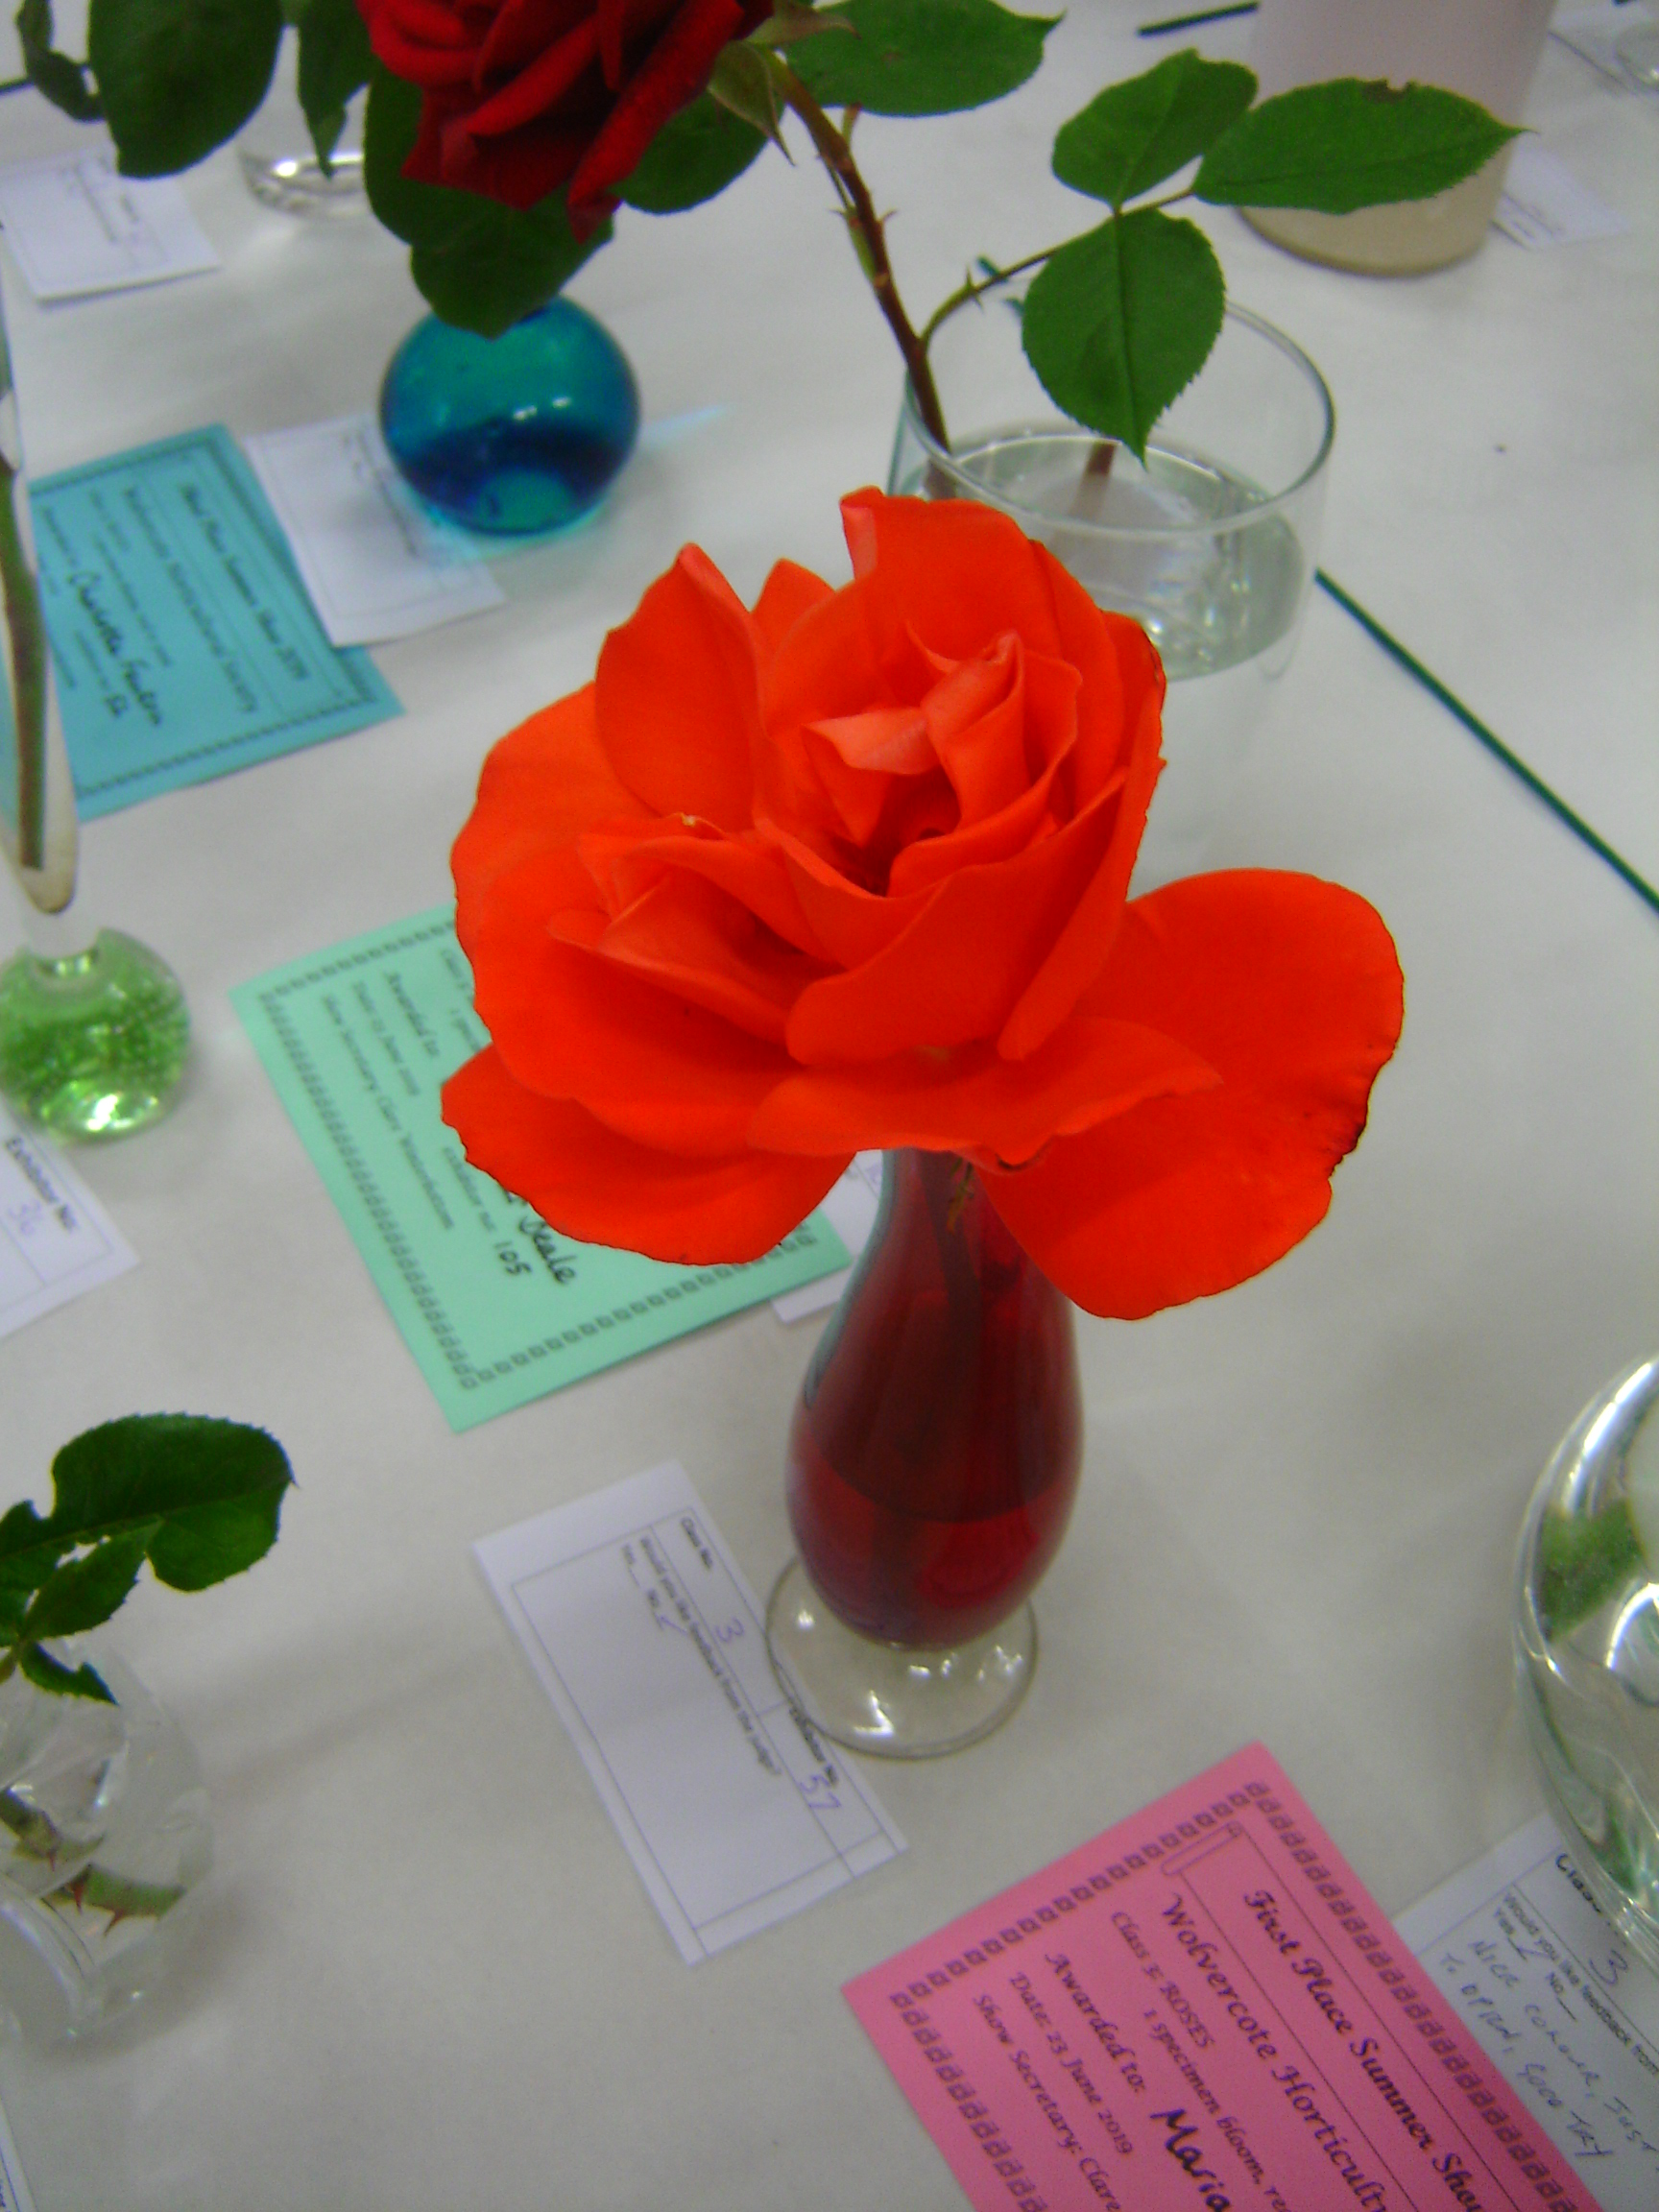 Orange-red rose, displayed on table as exhibit in Wolvercote Horticultural Society summer show.